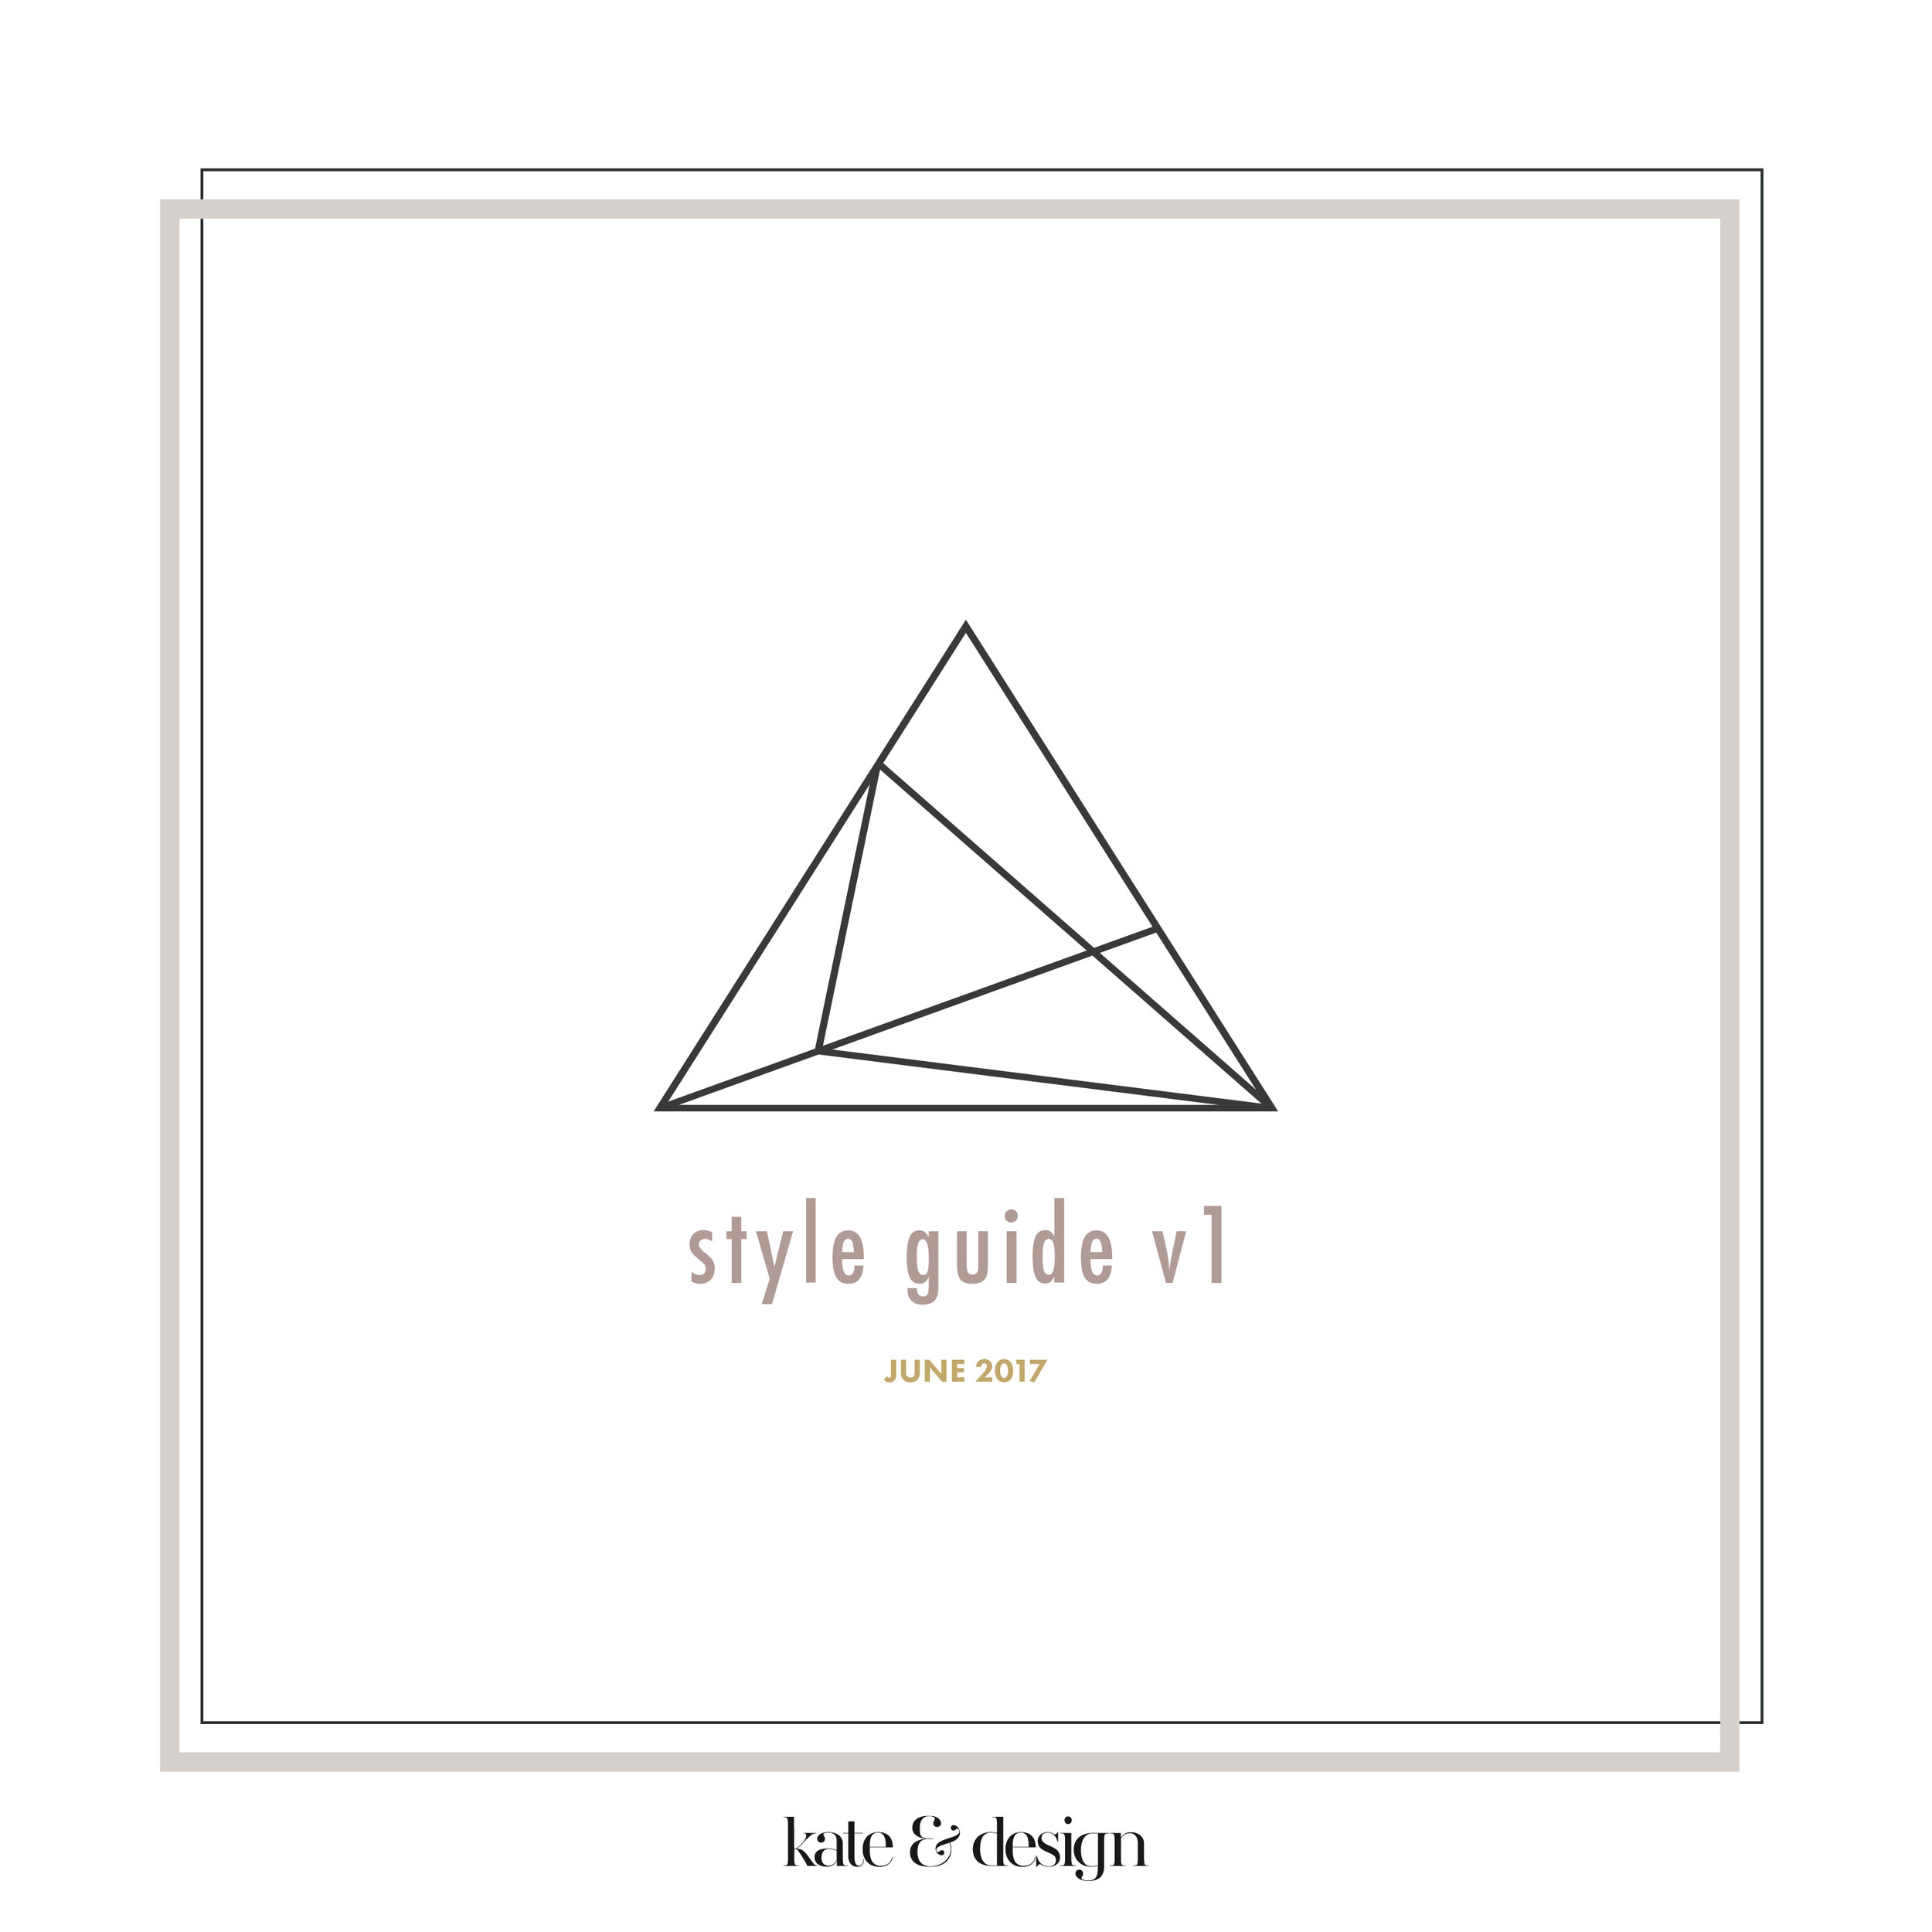 Copy of style guide v1